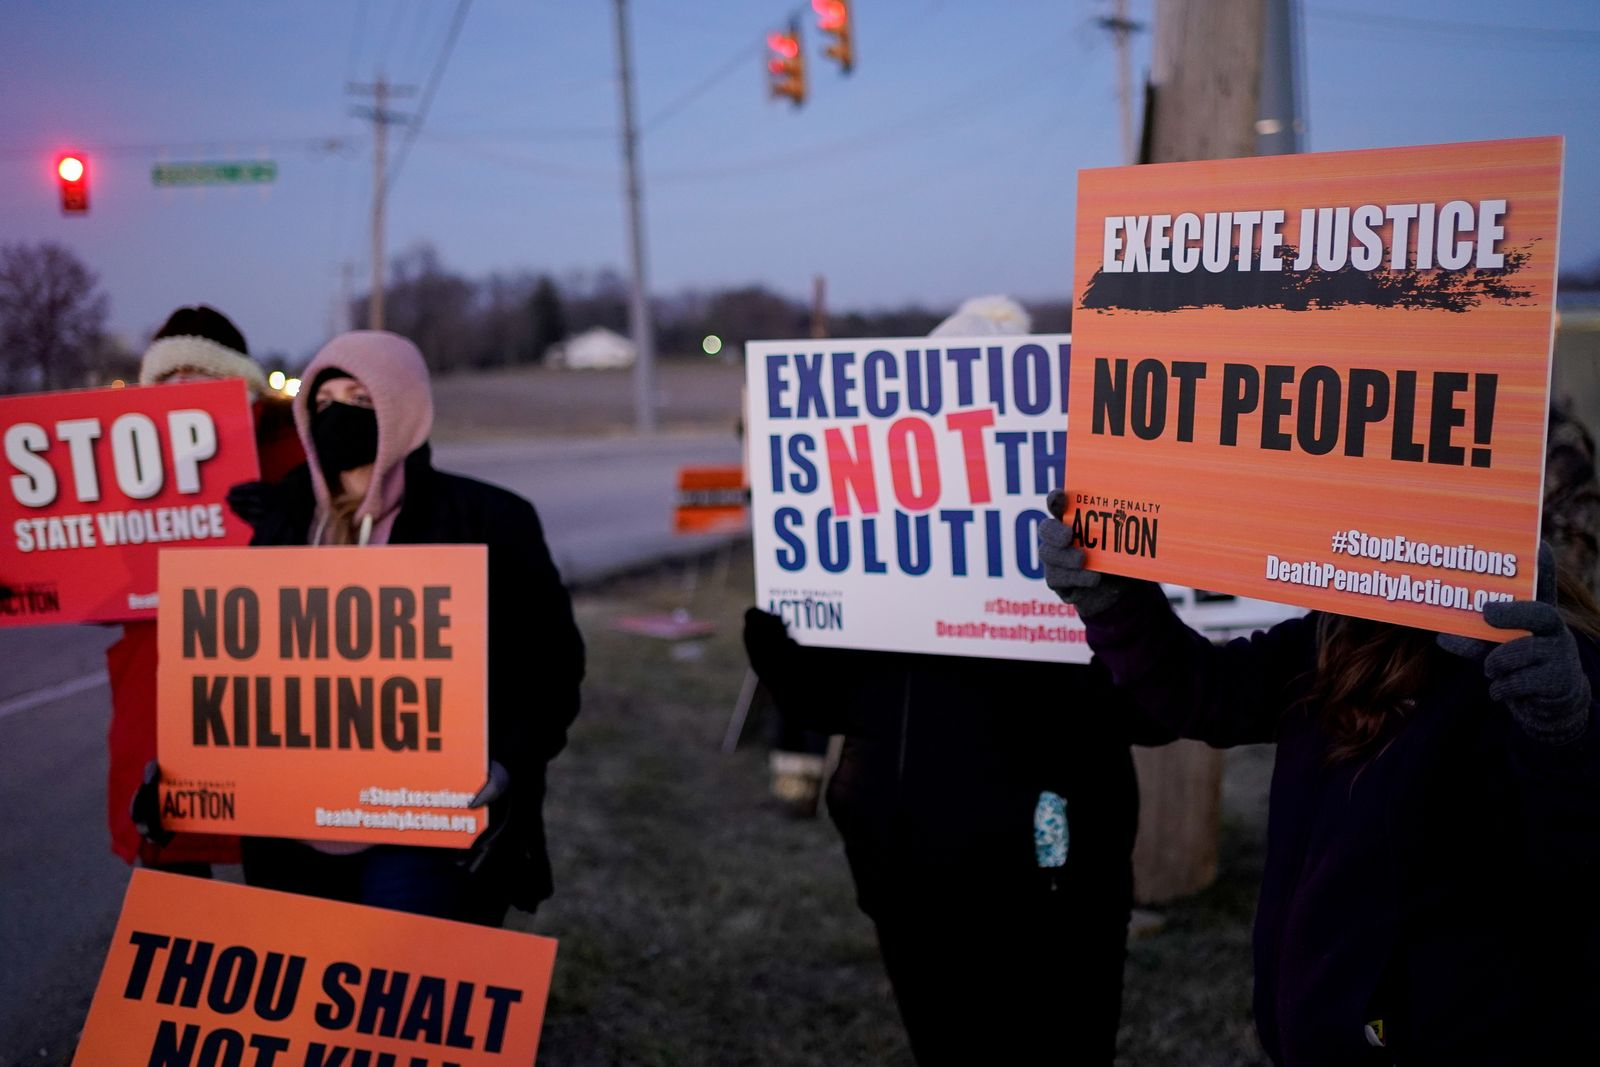 Activists in opposition to the death penalty gather to protest the execution of Lisa Montgomery